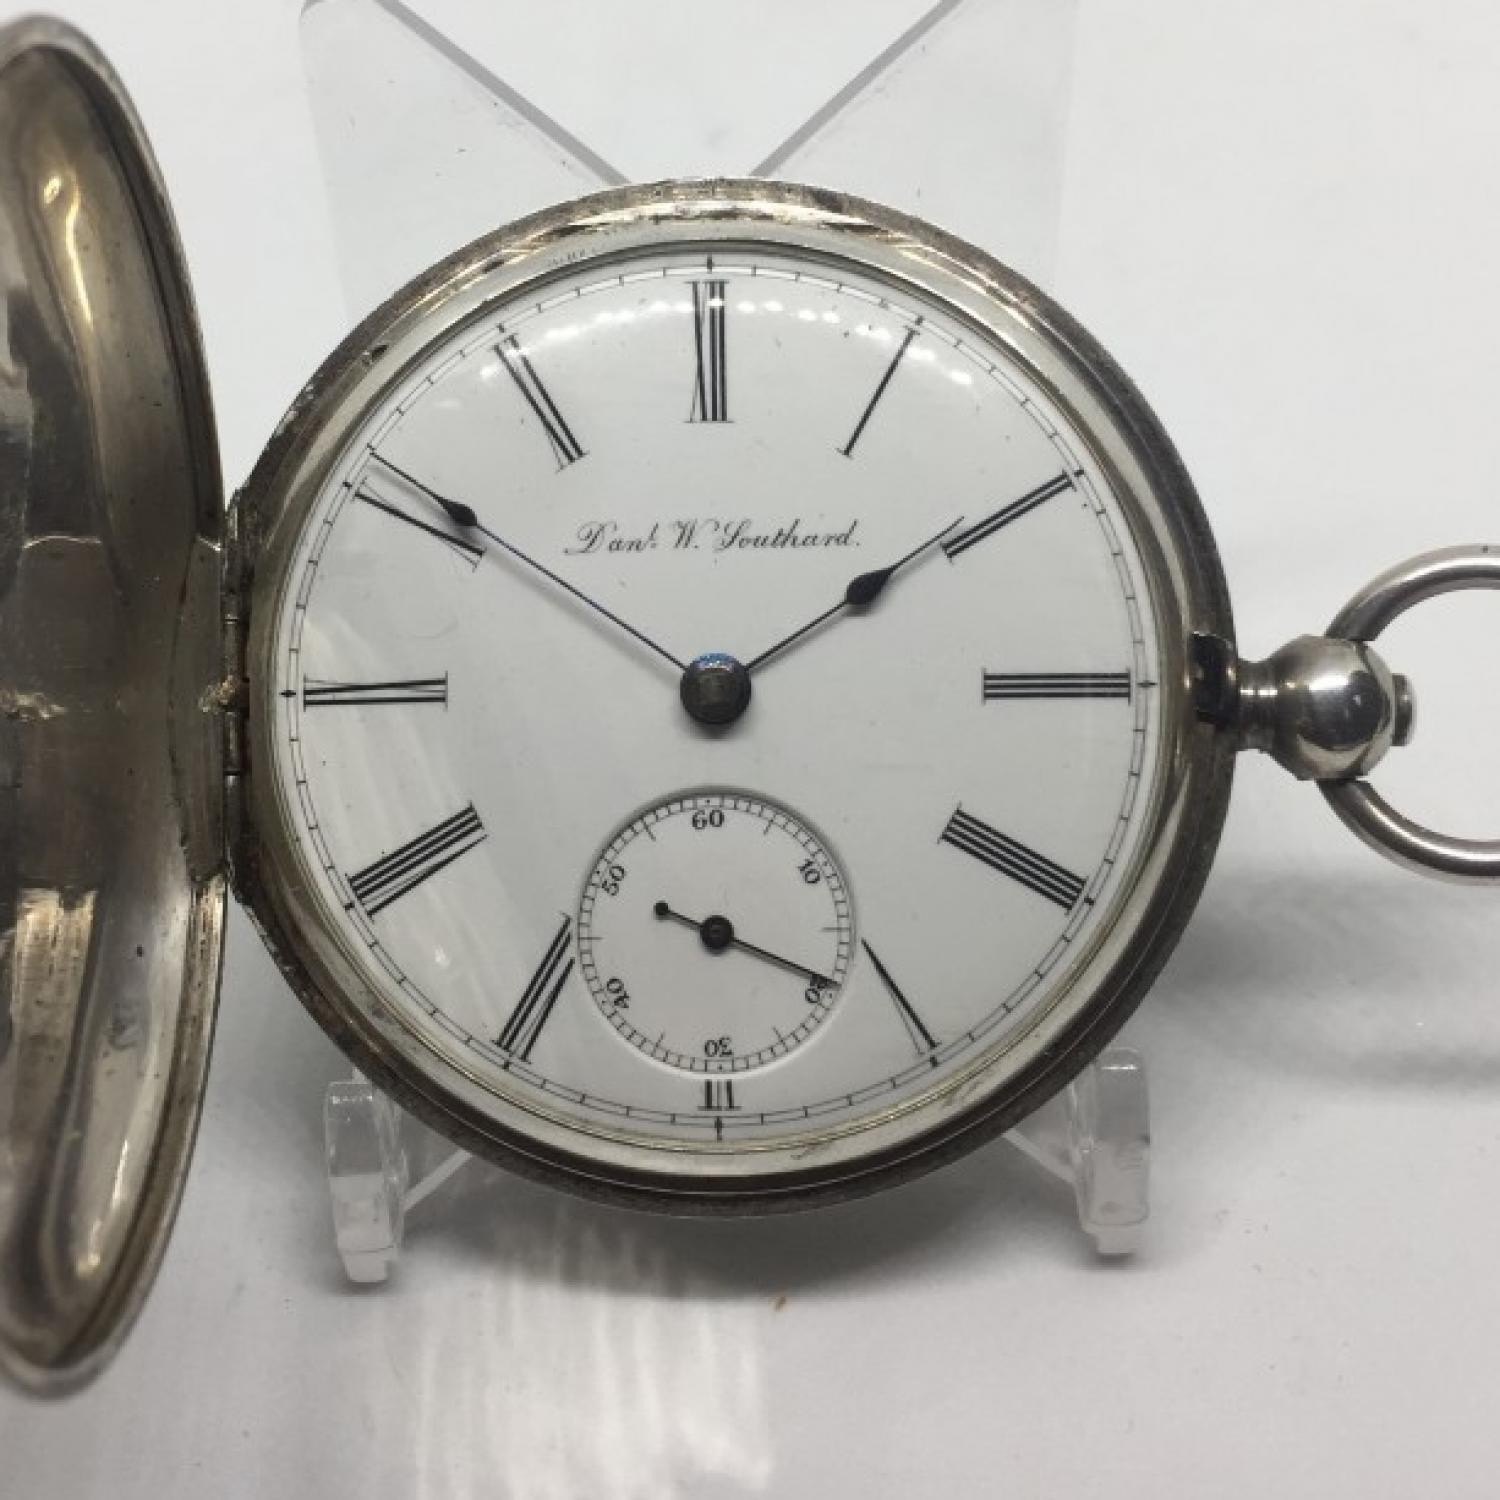 Image of Waltham A.T. & Co. #27821 Dial